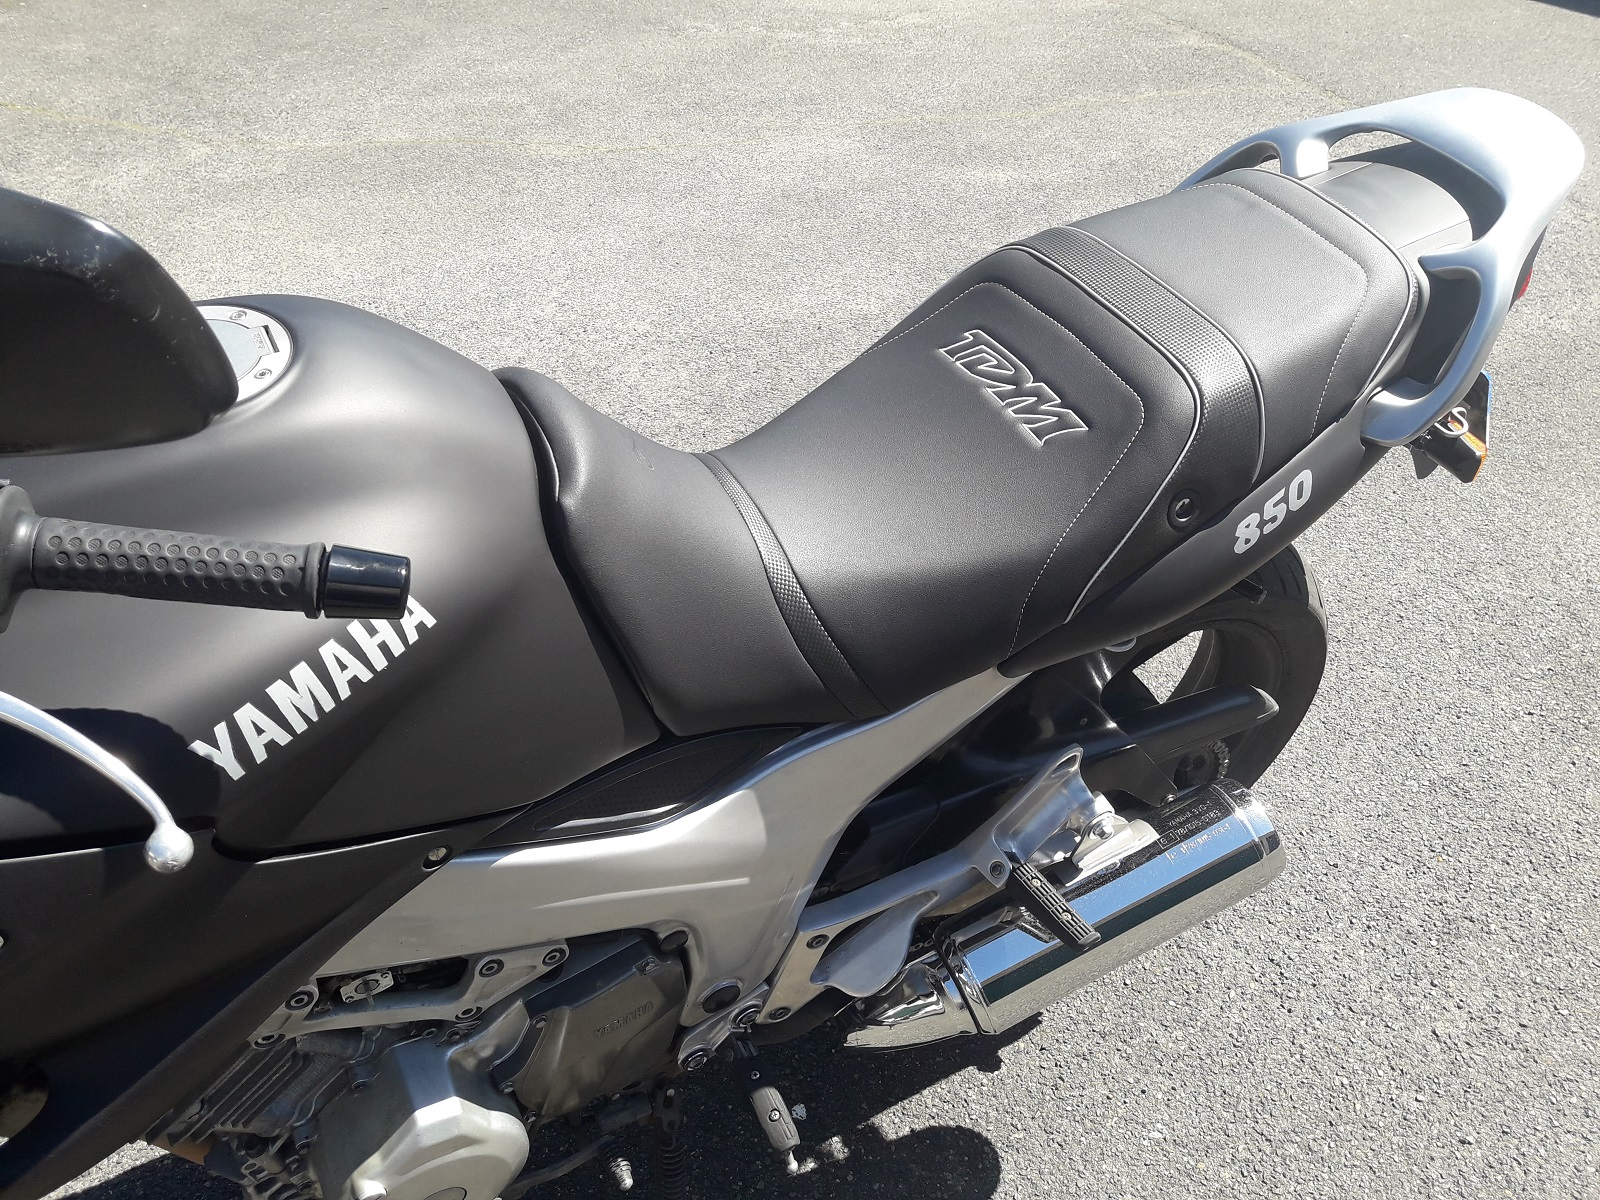 Yamaha TDM 850 1996-2002 Top Sellerie Rivestimento per Sella Made In France REF3738